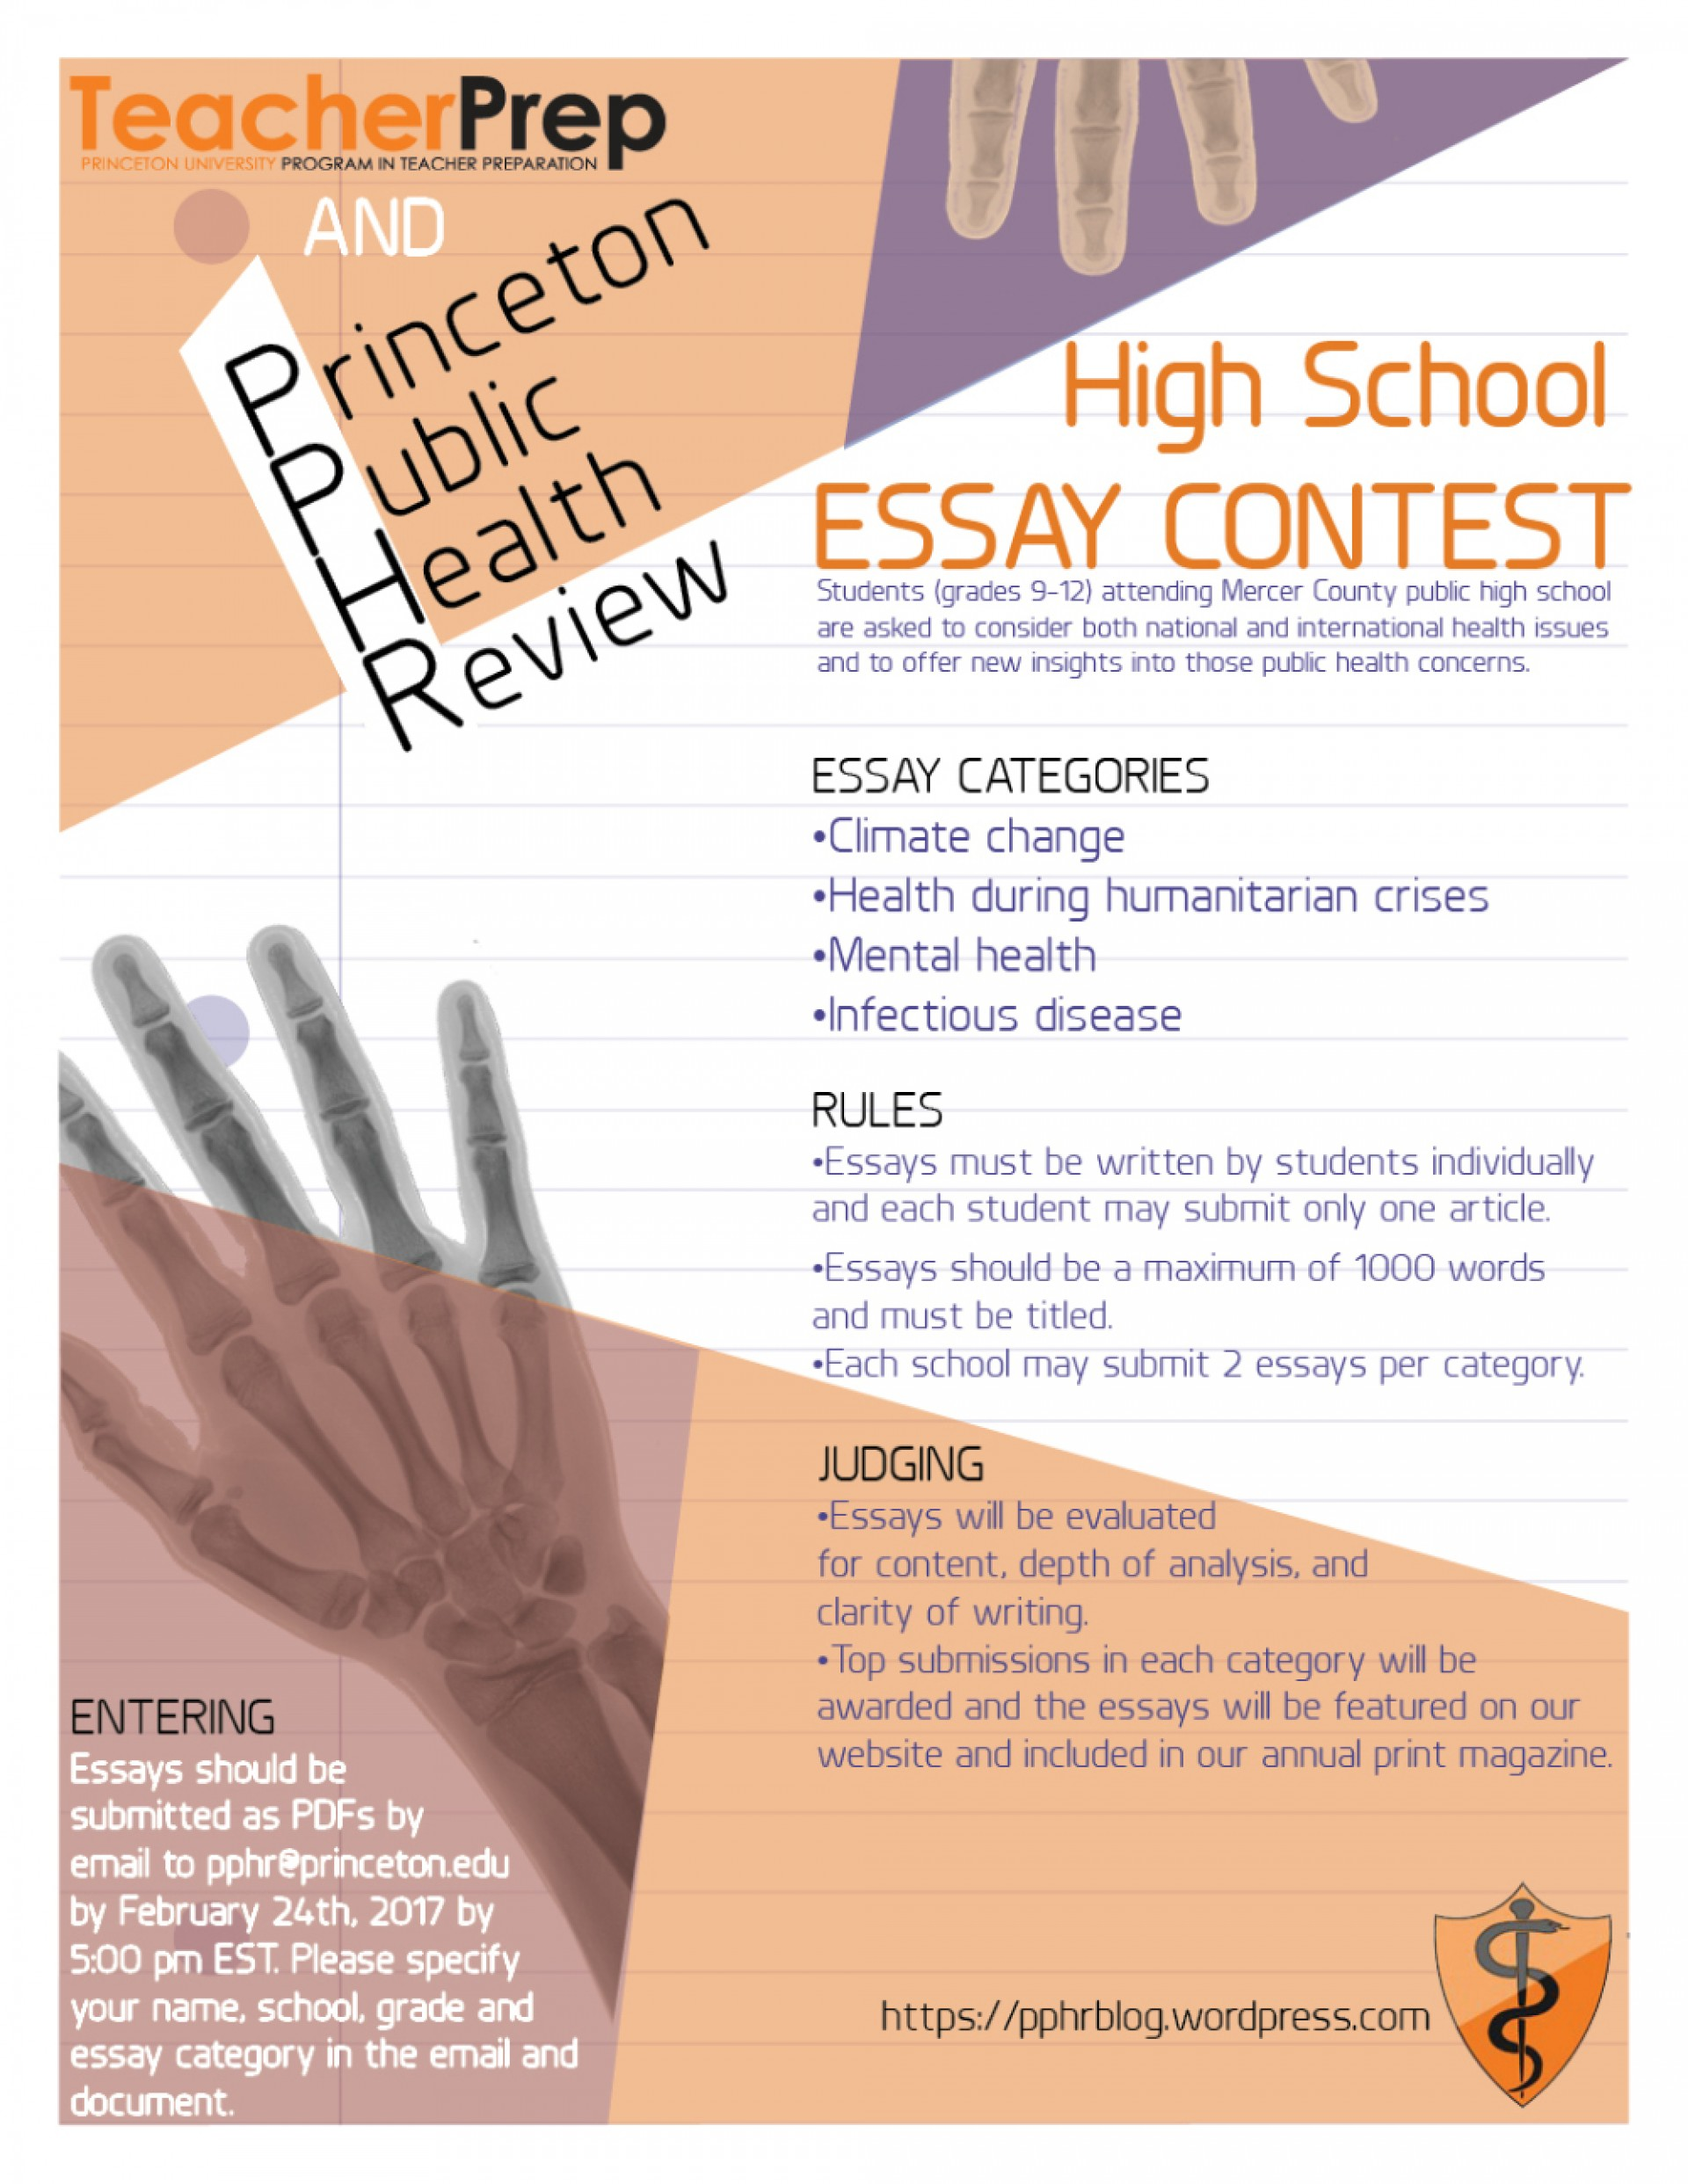 011 Essay Contests For High School Students Pphressaycontestfeb24w1000 Staggering 2017 1920